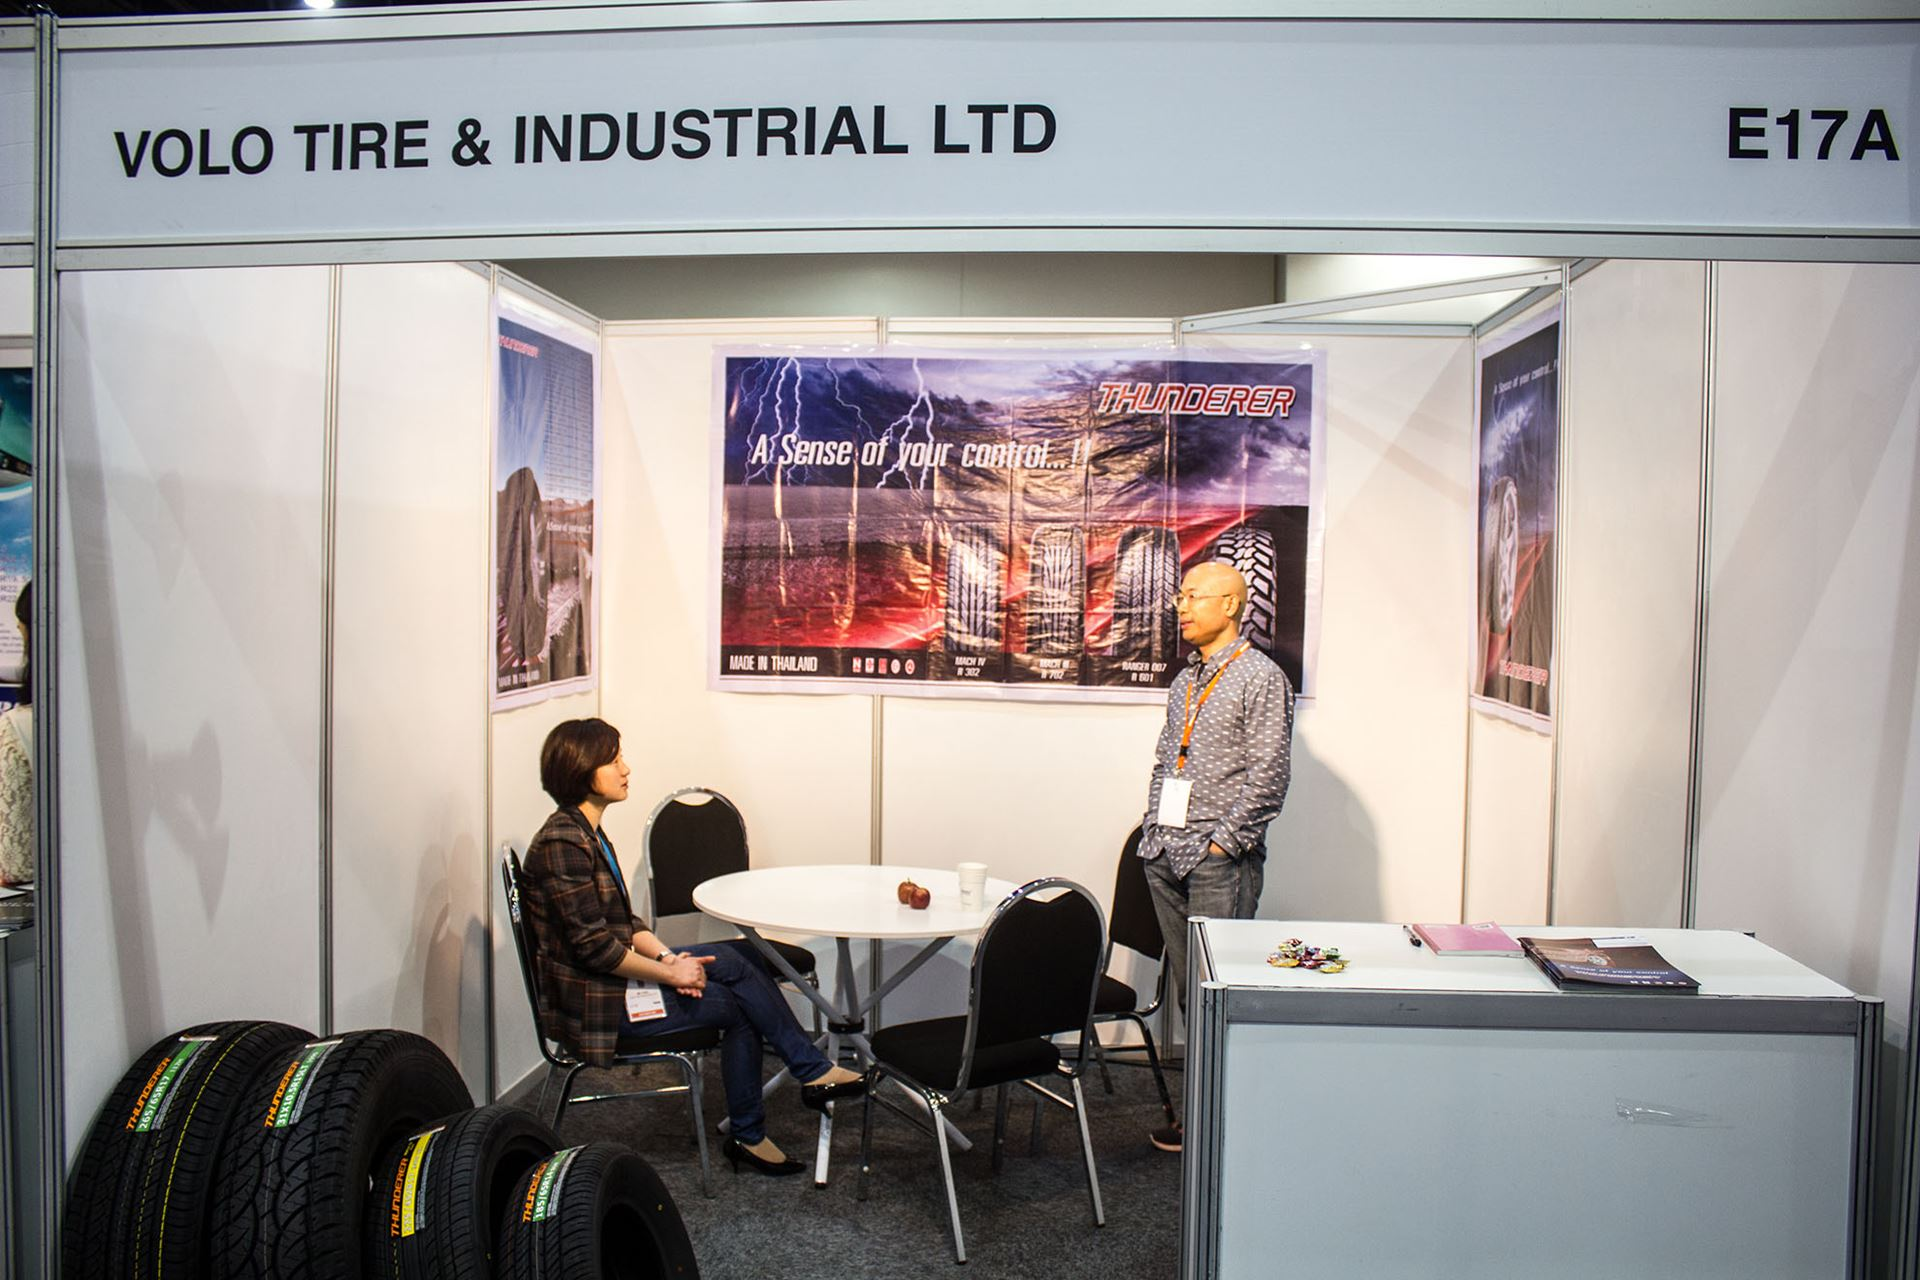 Tyre-Expo-South-Africa-2014-volvo-tire